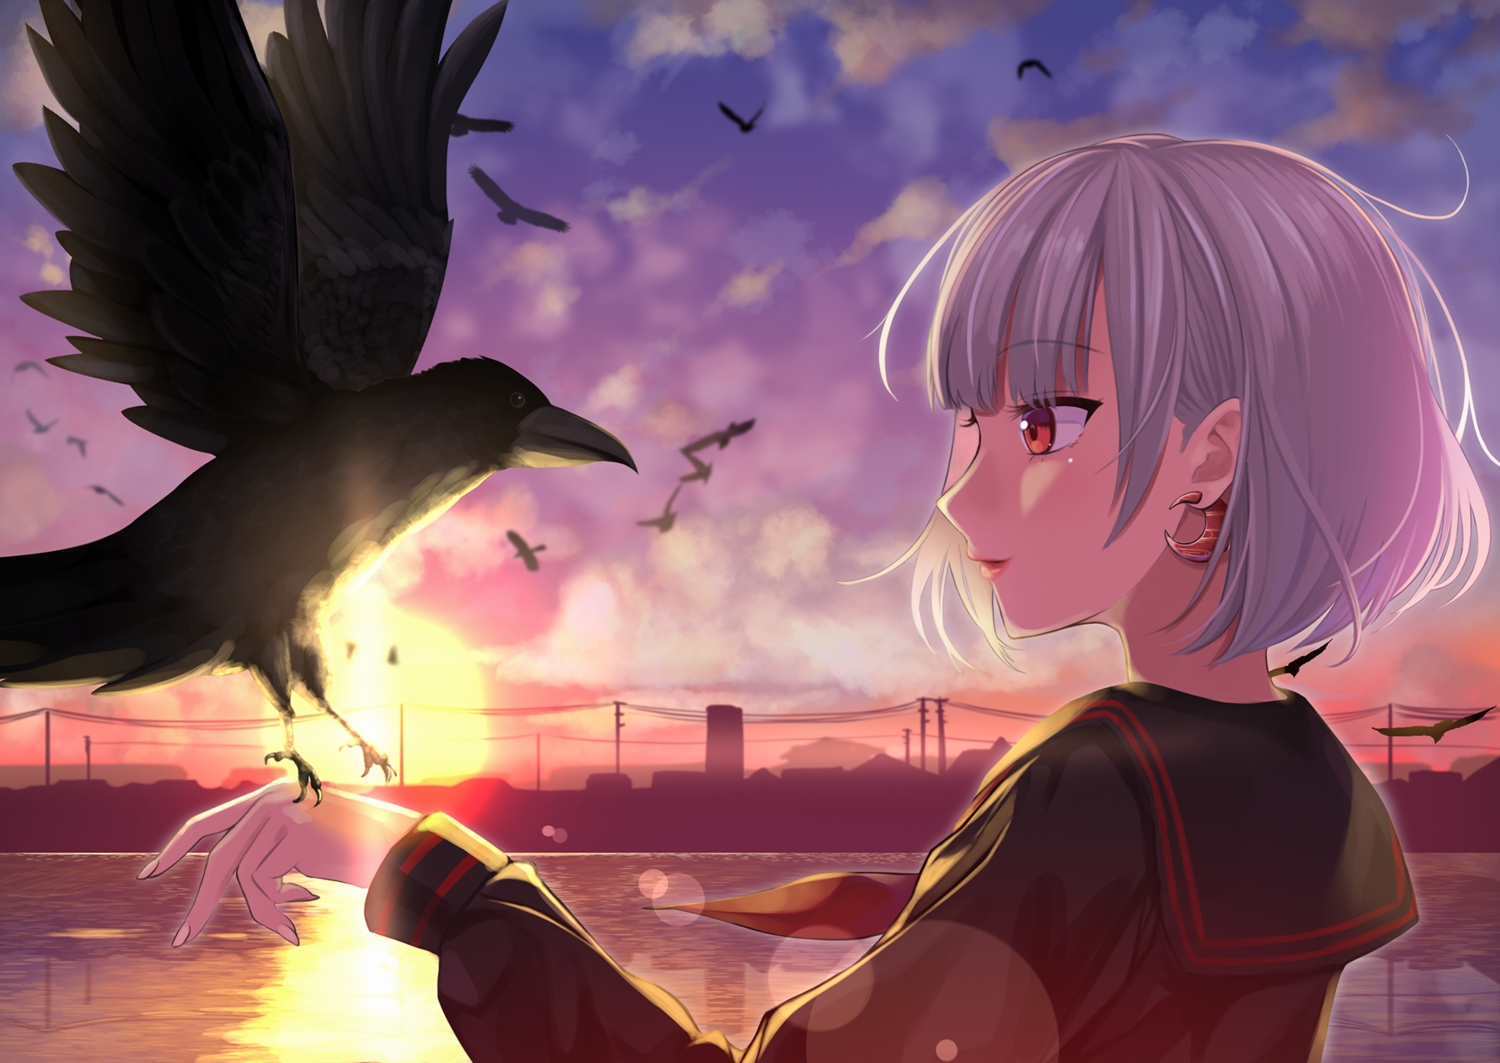 animal bird close original red_eyes shaketarako short_hair sunset white_hair